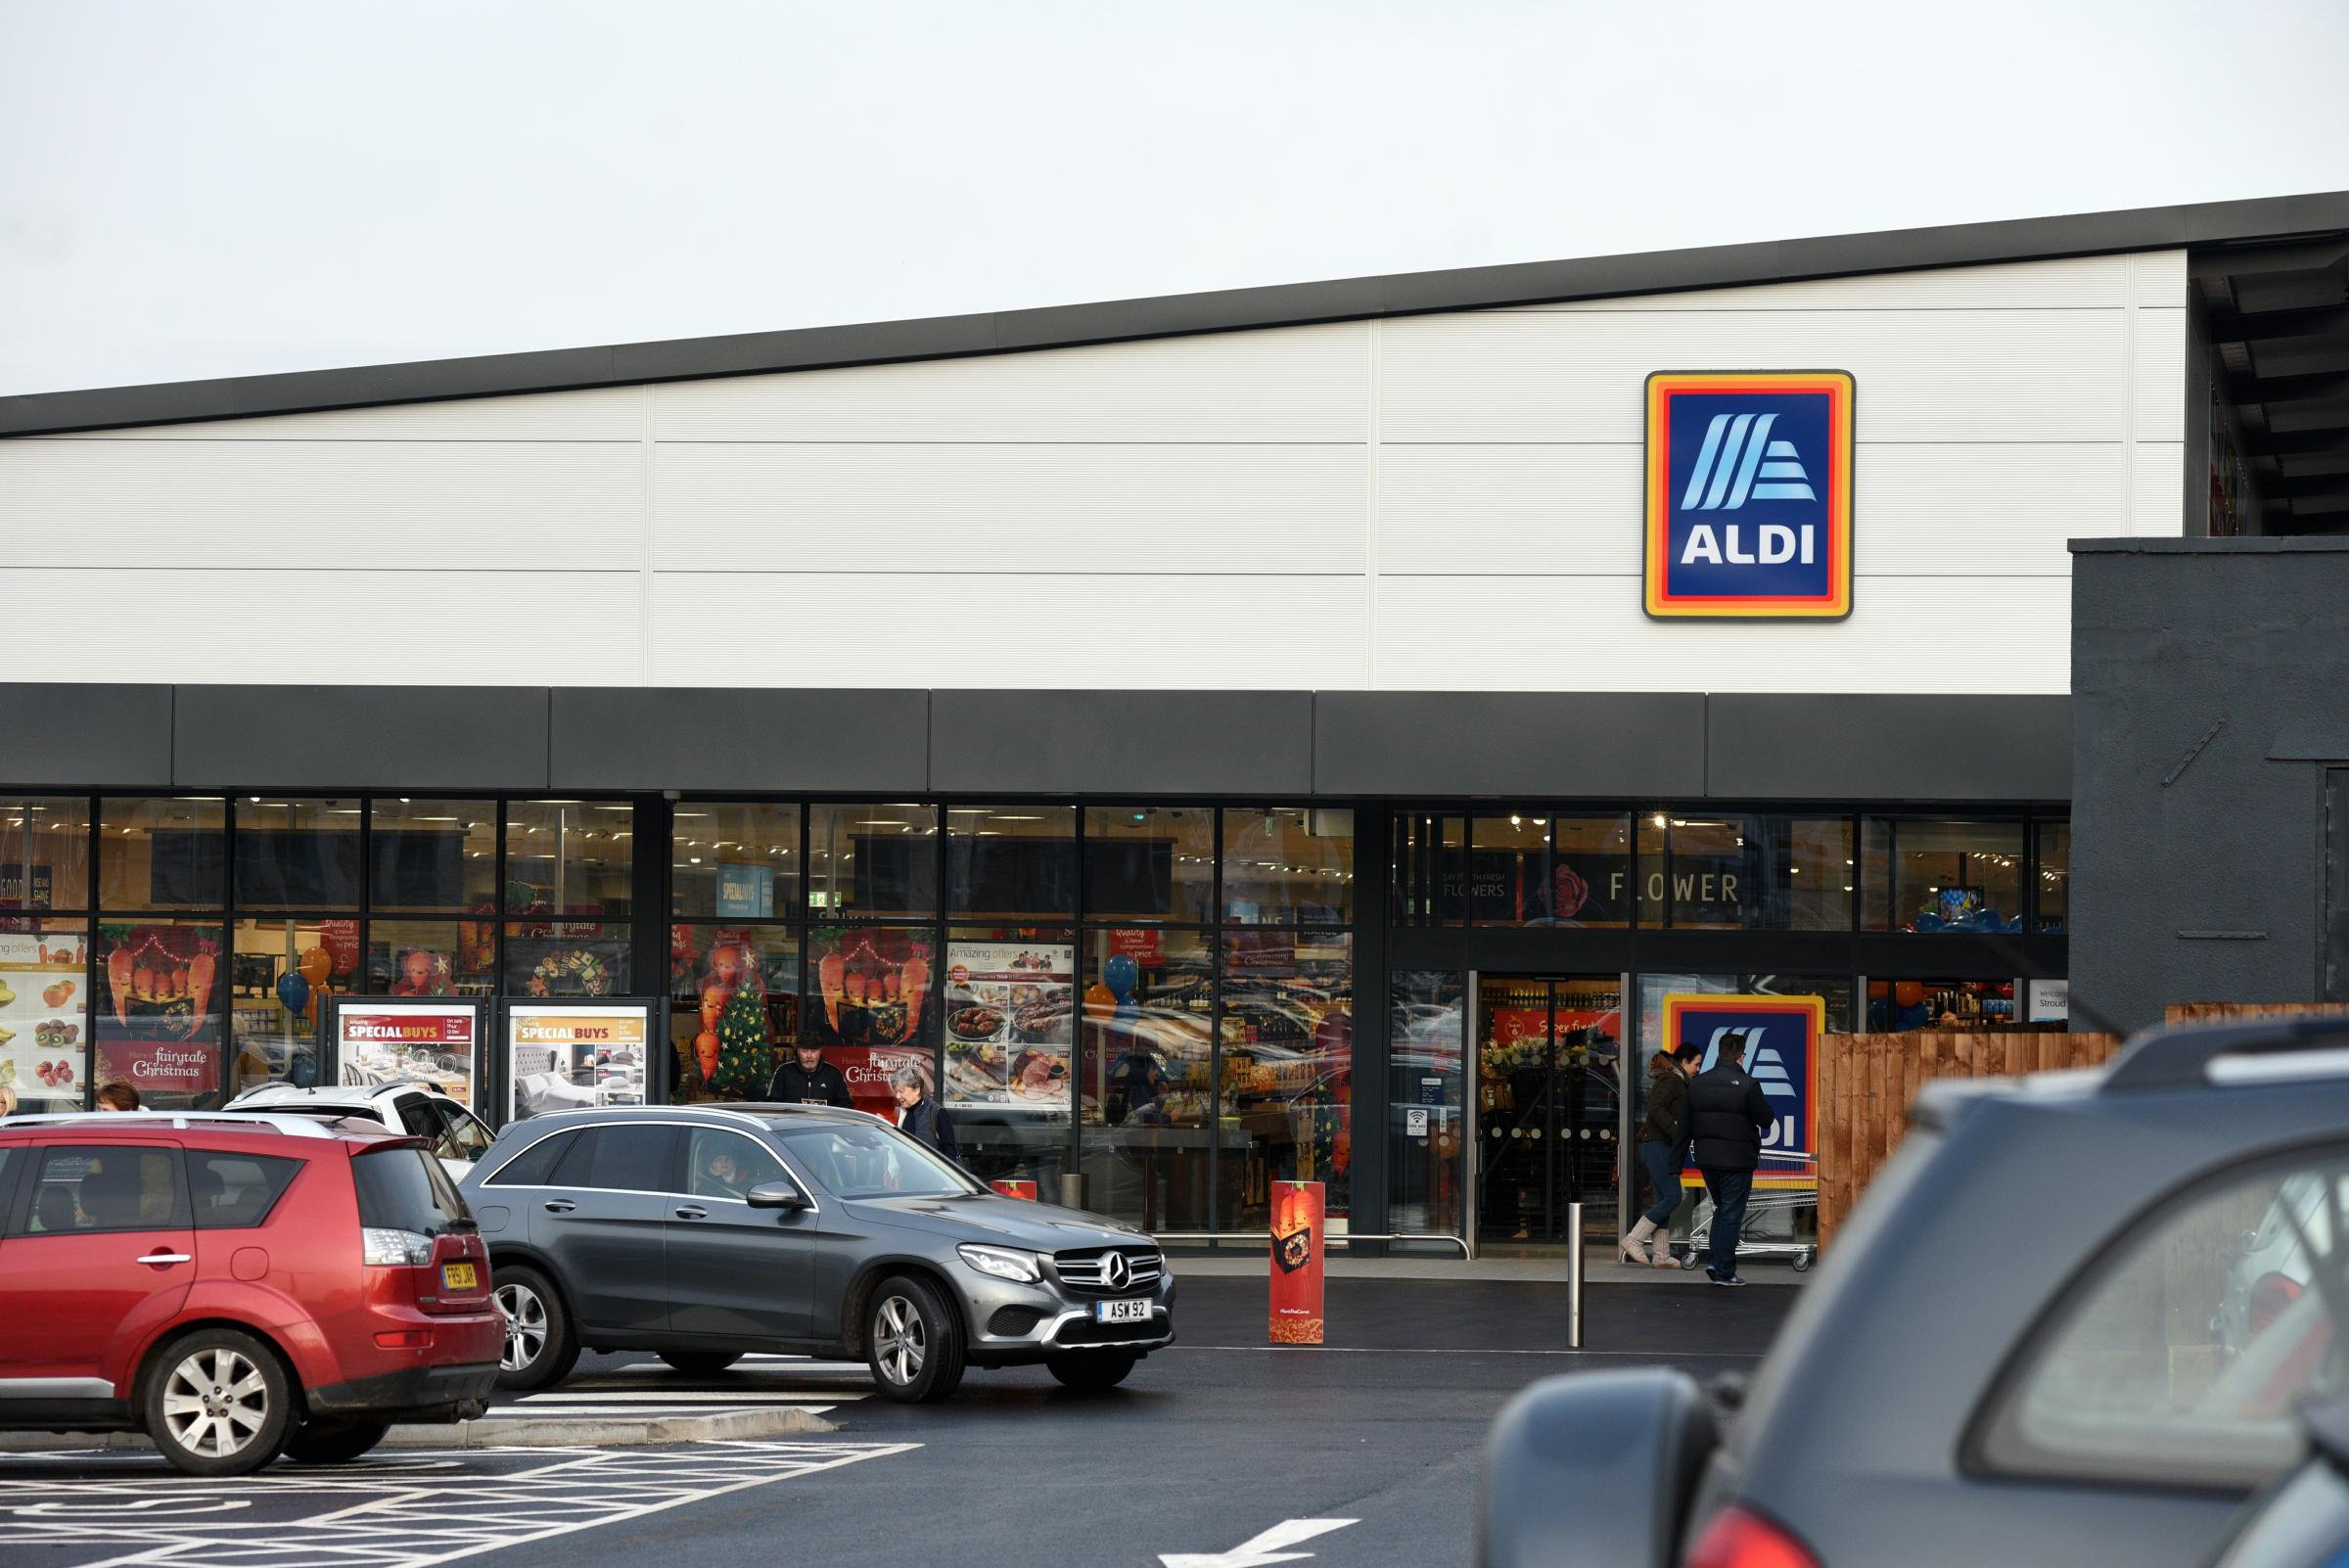 Supermarket giant Aldi boasts its best ever festive period, selling 50 million mince pies